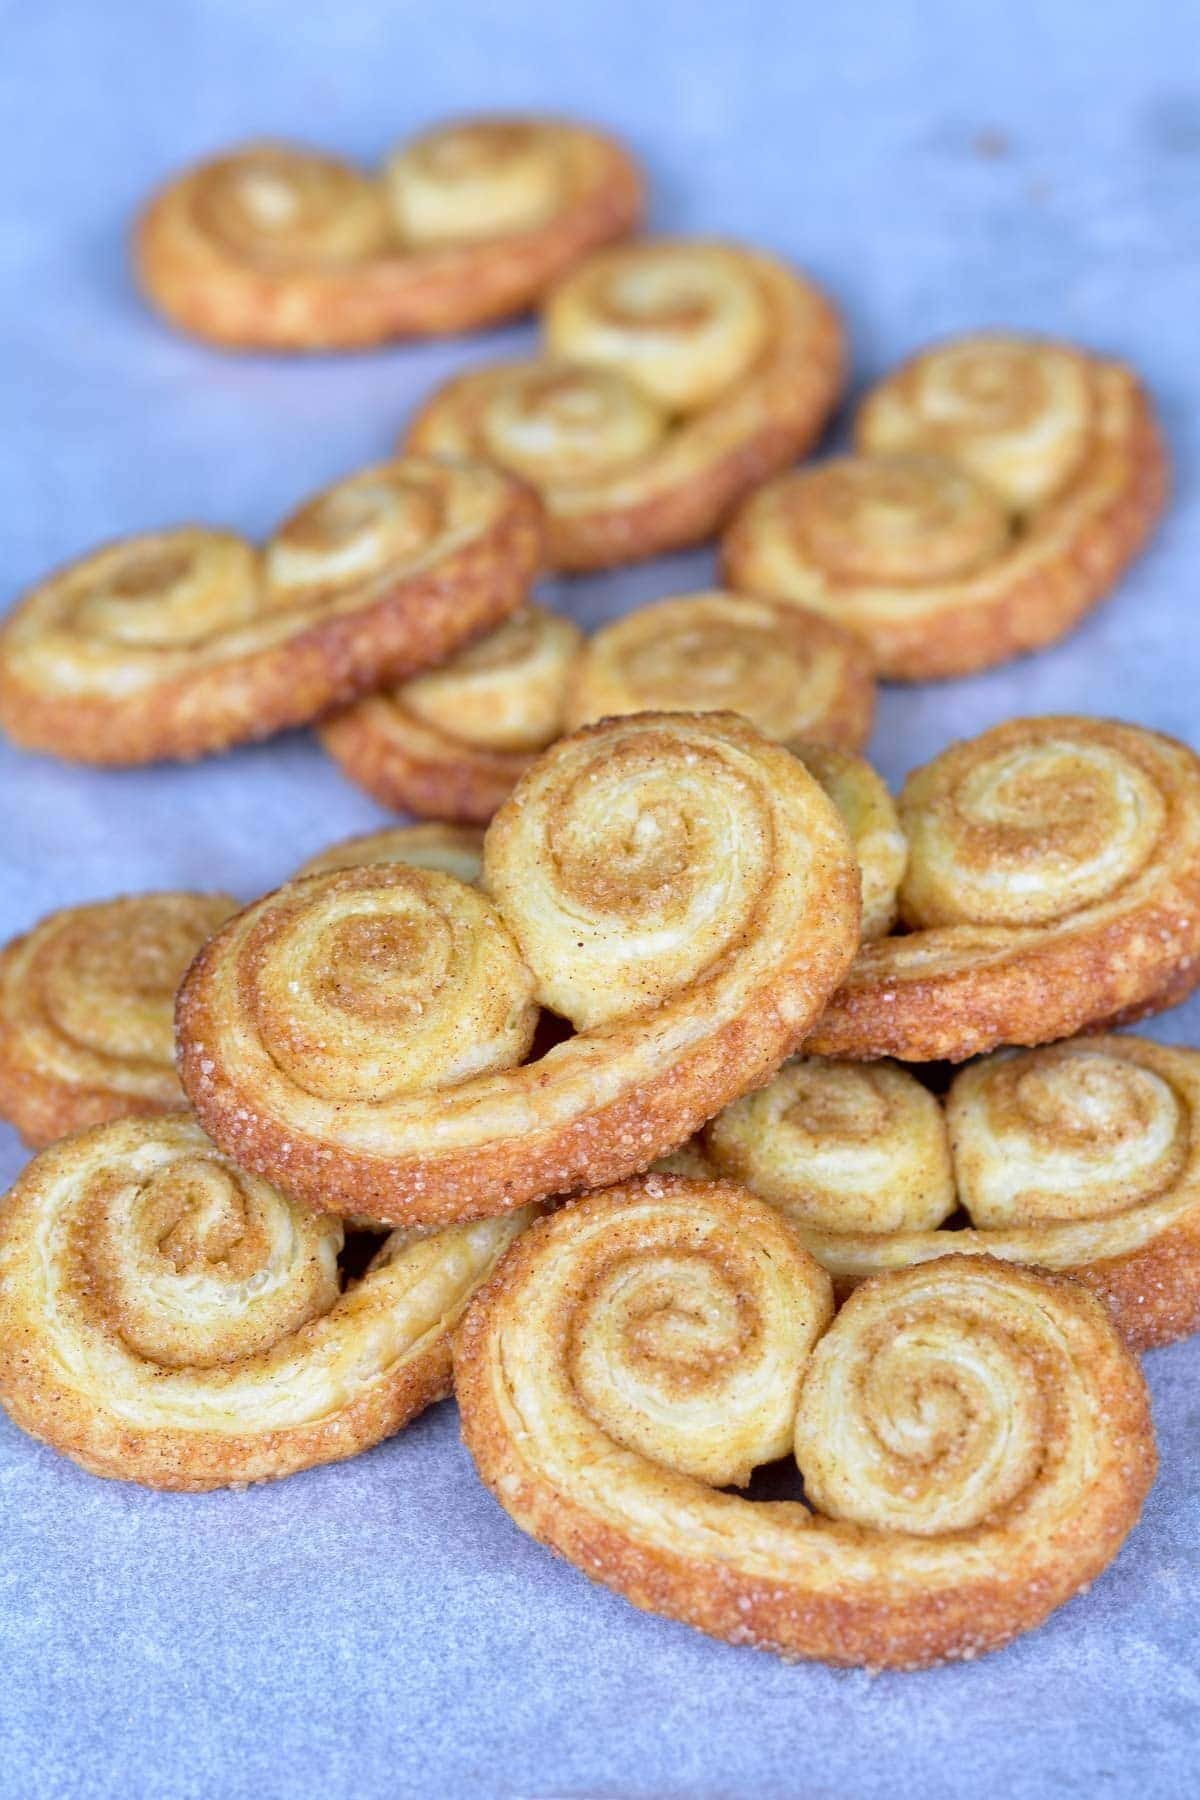 puff pastry cookies cinnamon palmiers on a blue background